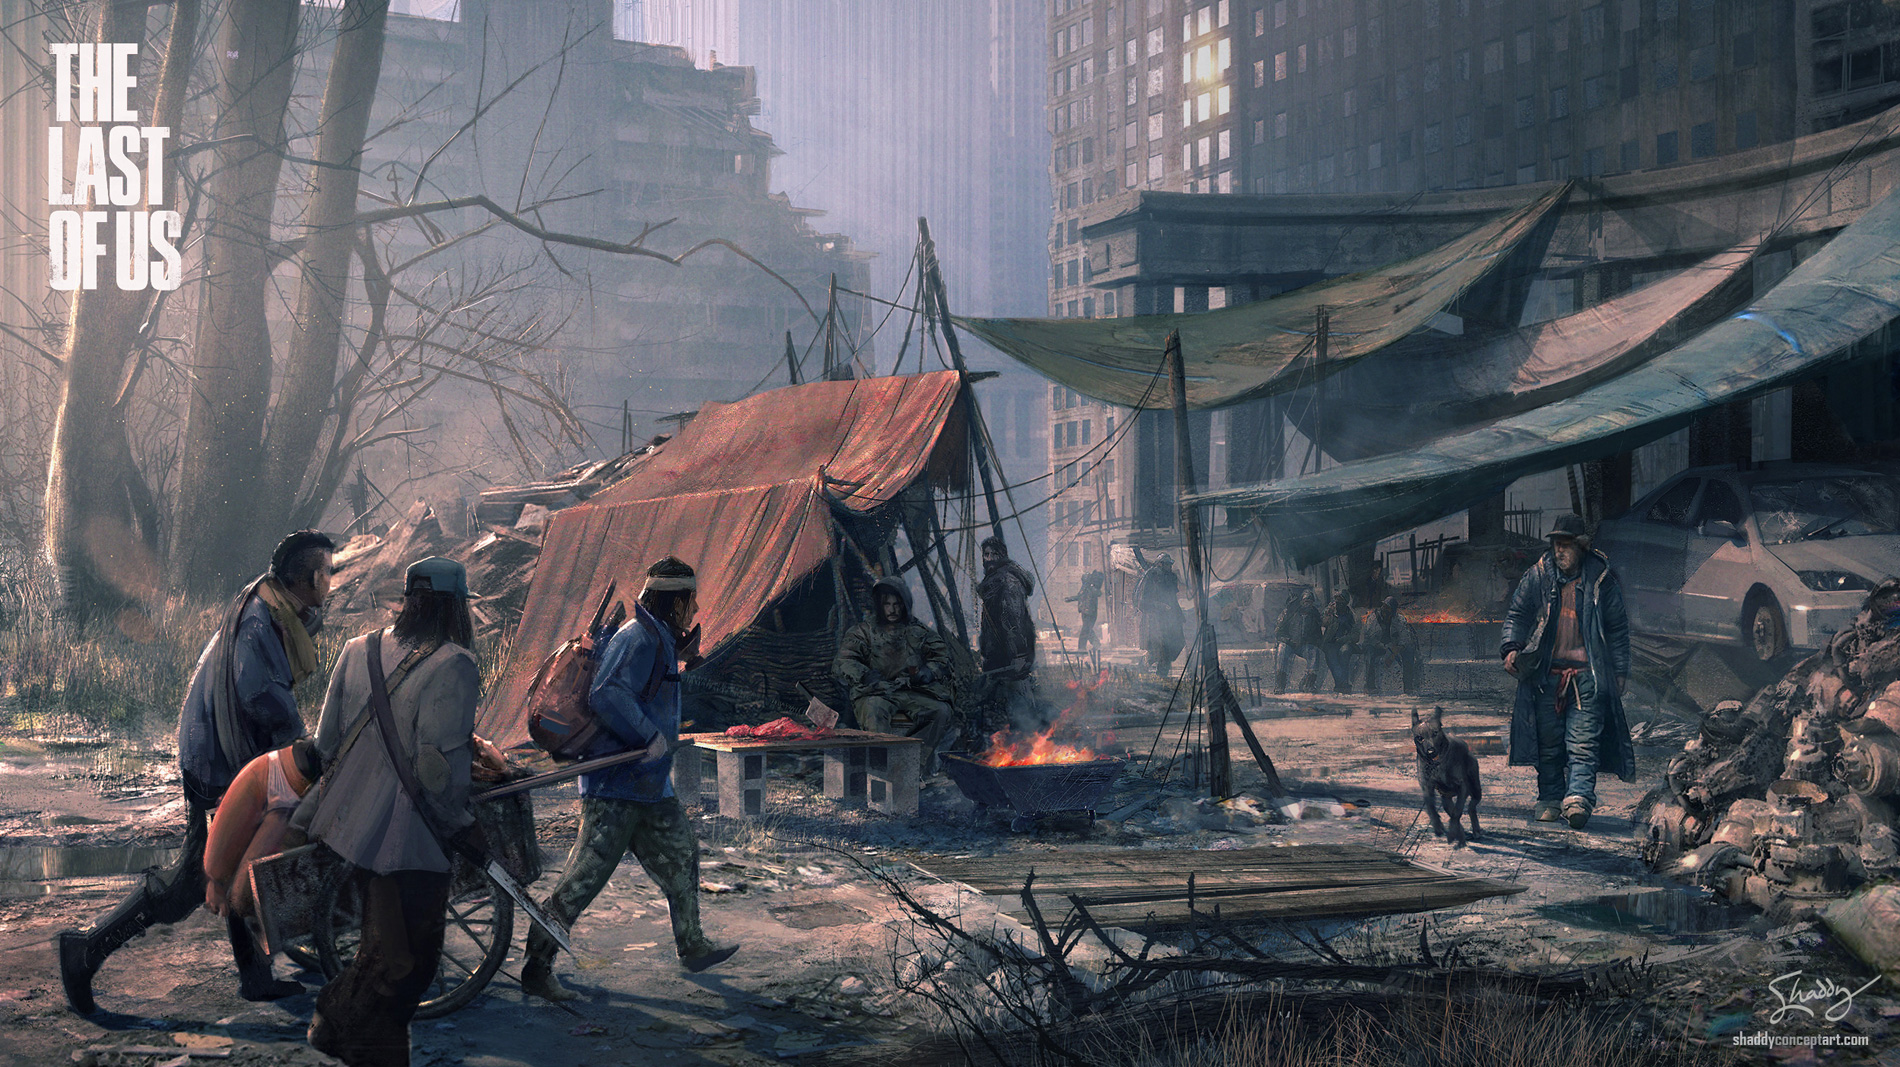 The last of us concept art hunter city ss 01